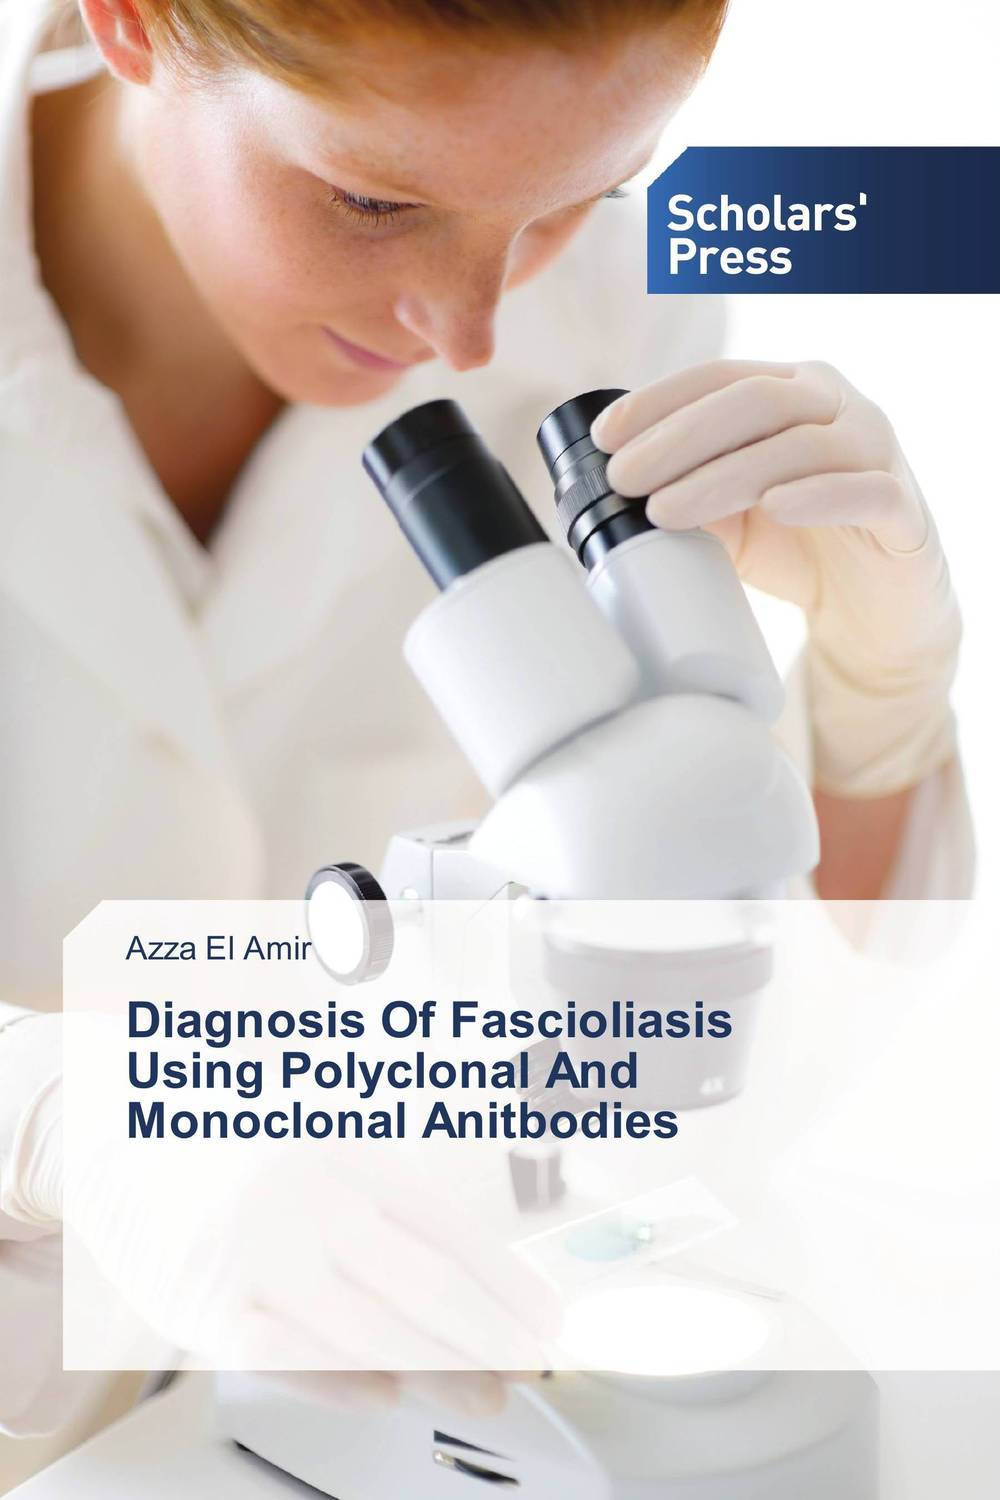 Diagnosis Of Fascioliasis Using Polyclonal And Monoclonal Anitbodies franke bibliotheca cardiologica ballistocardiogra phy research and computer diagnosis